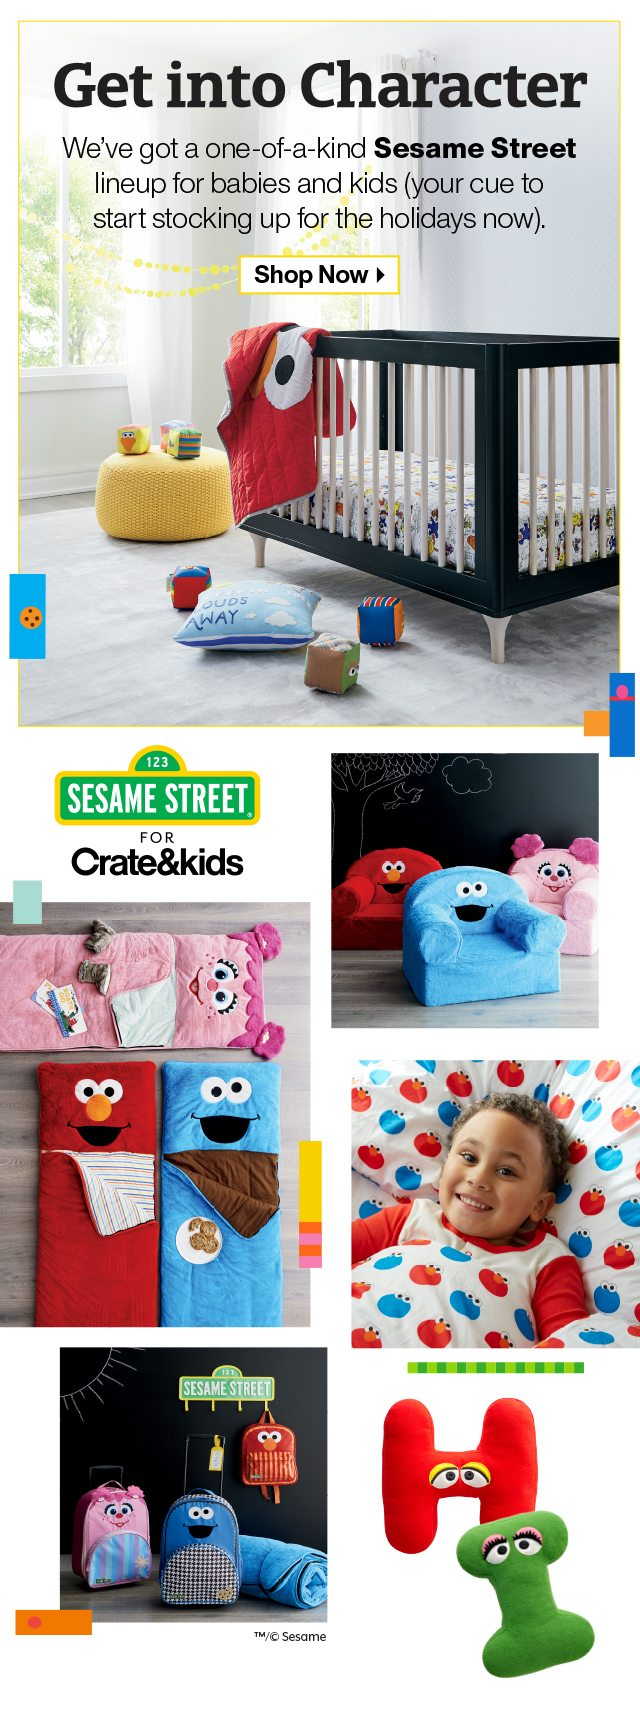 Shop Sesame Street for Crate&kids